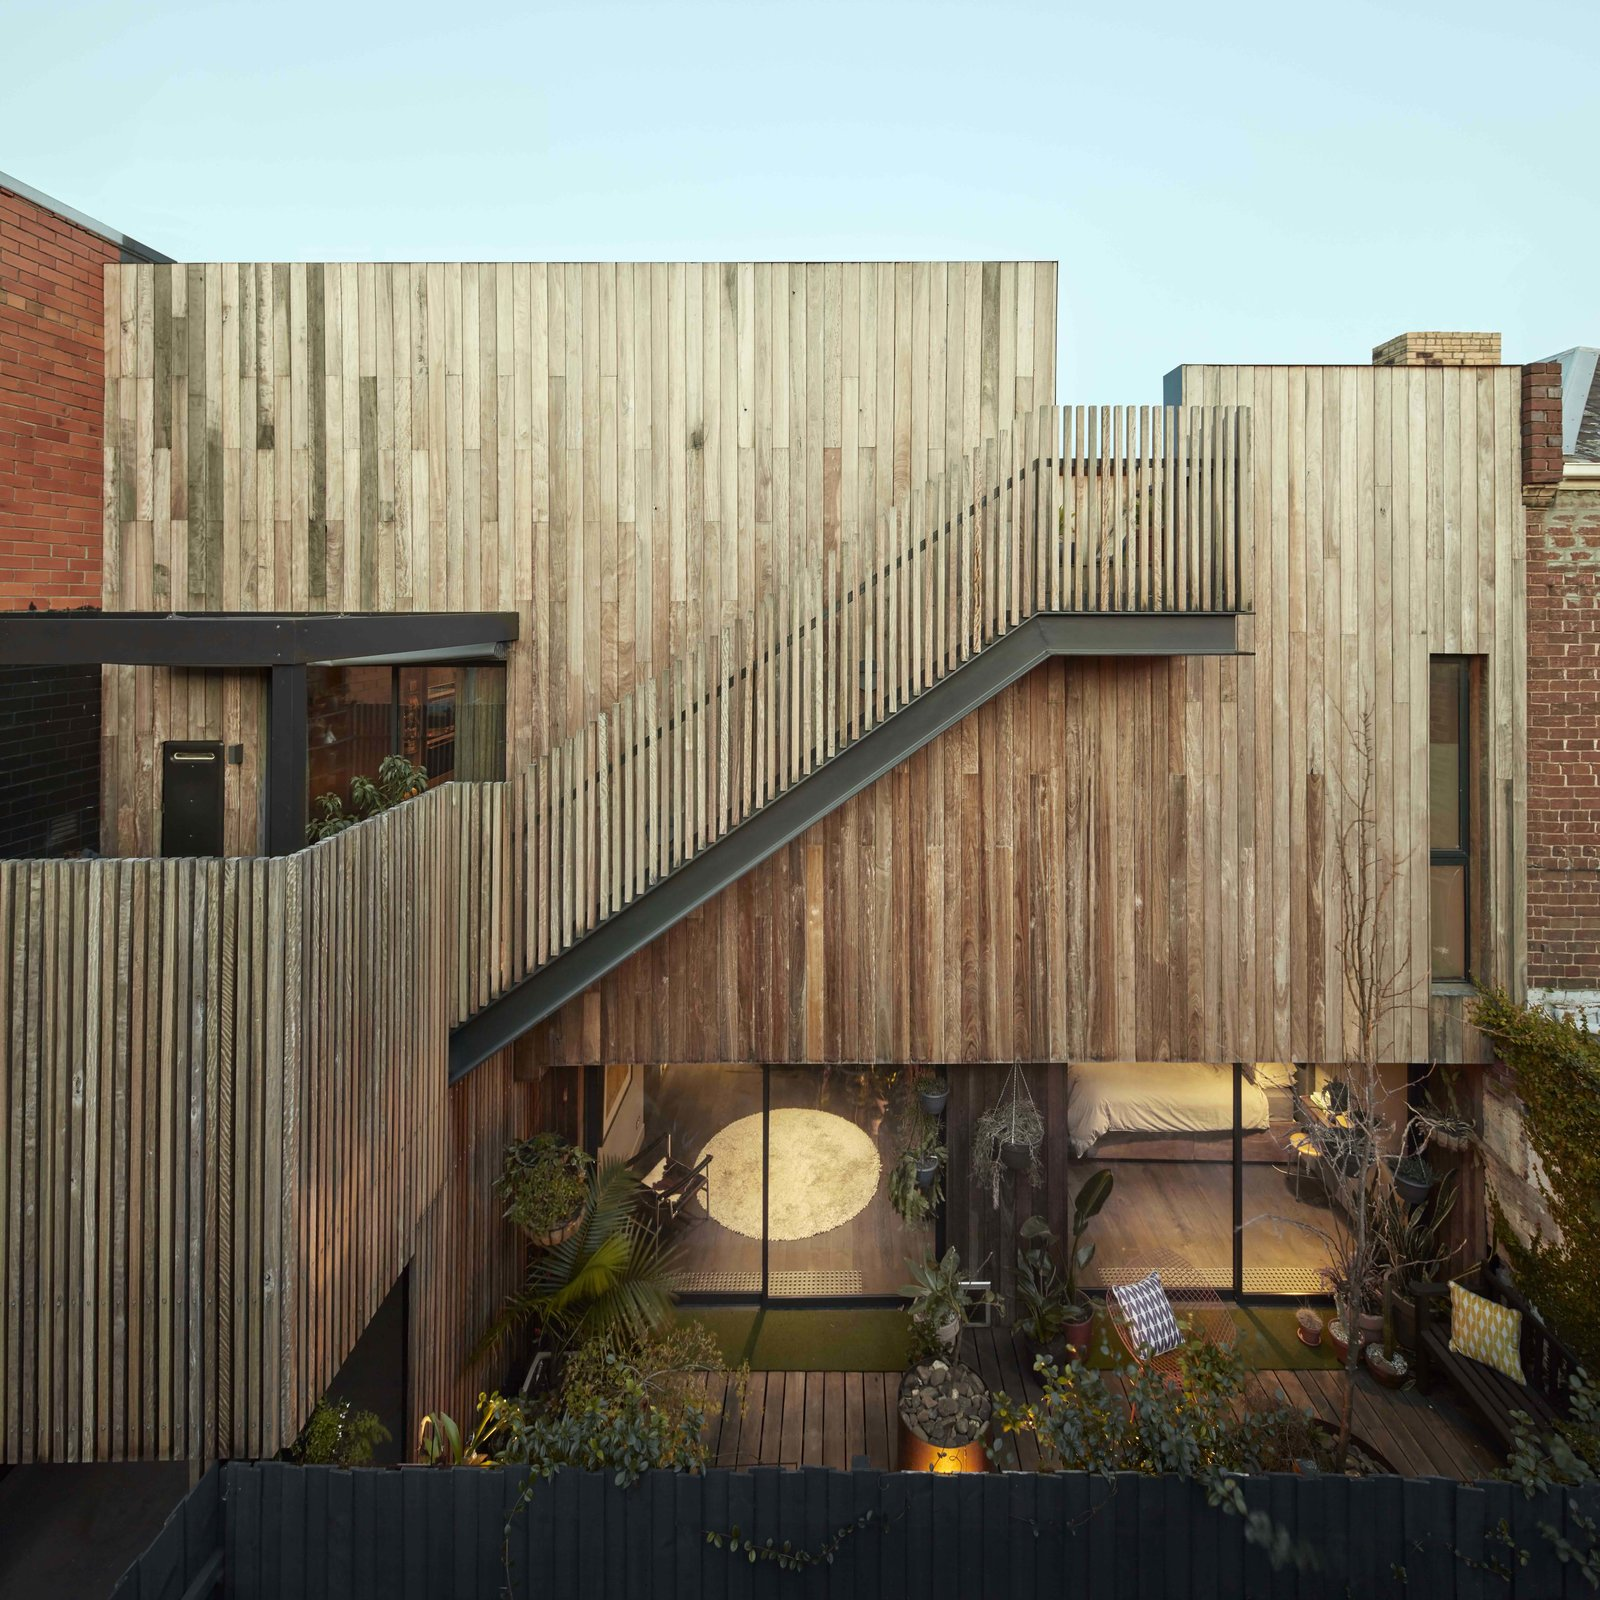 One of Melbourne's Oldest Prefab Timber Cottages Gets a Second Chance